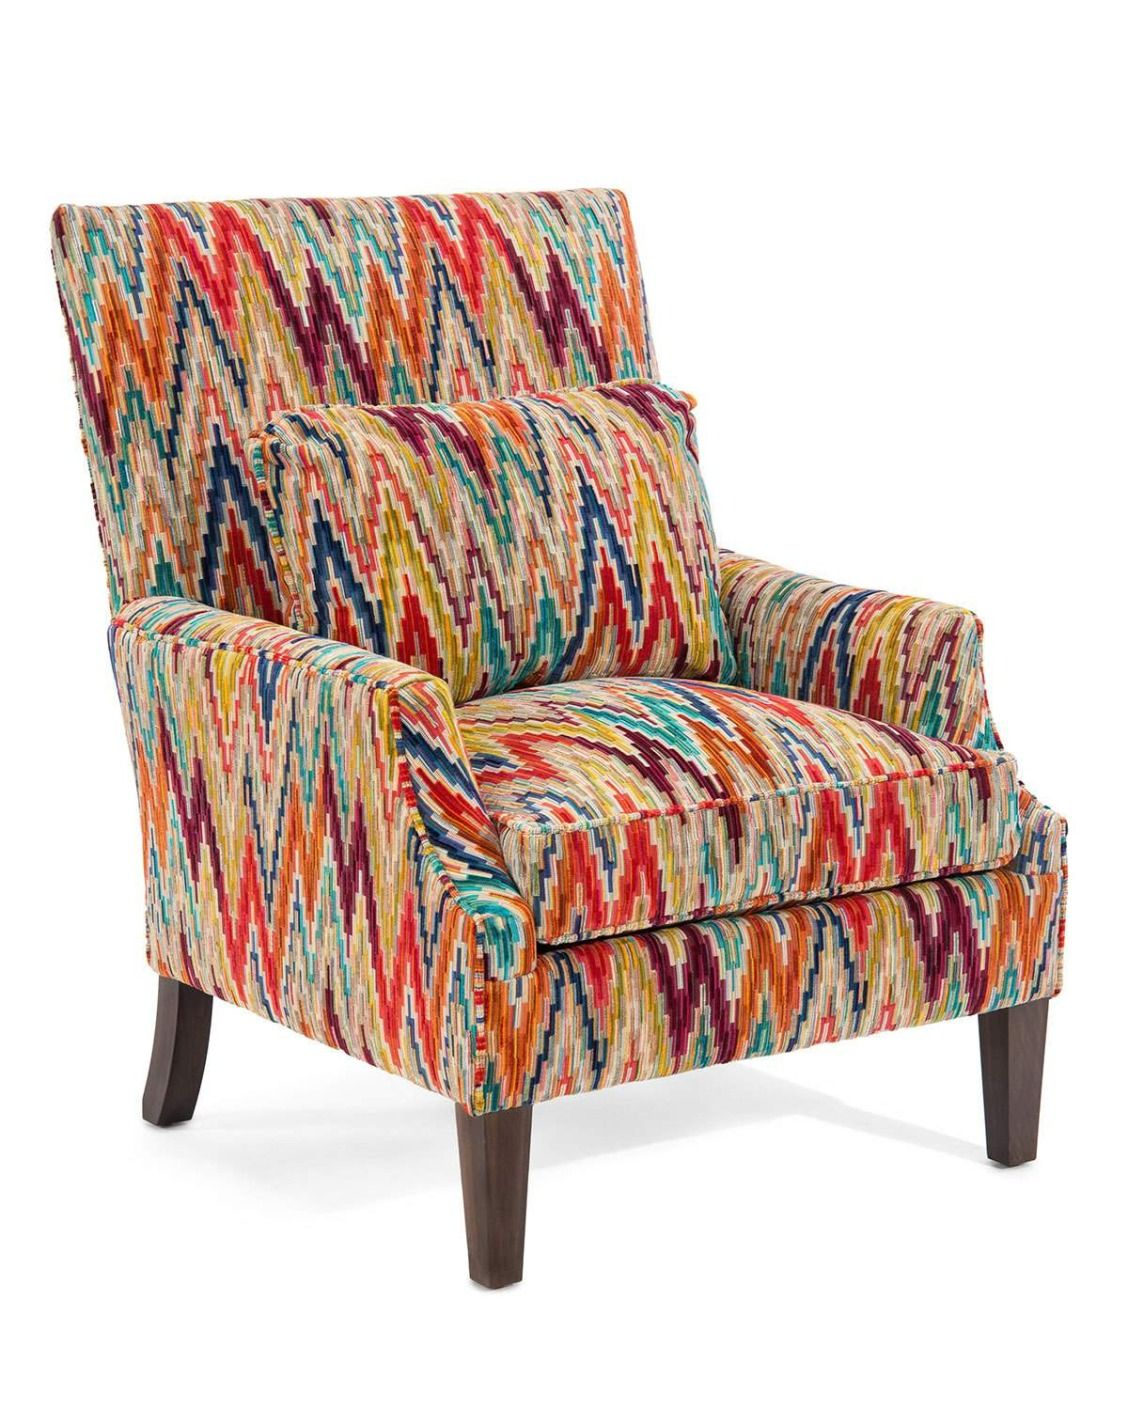 Colorful Accent Chair Leather Barrel Chairs John Richard Collection Cameron Club Trending Pops Of Color